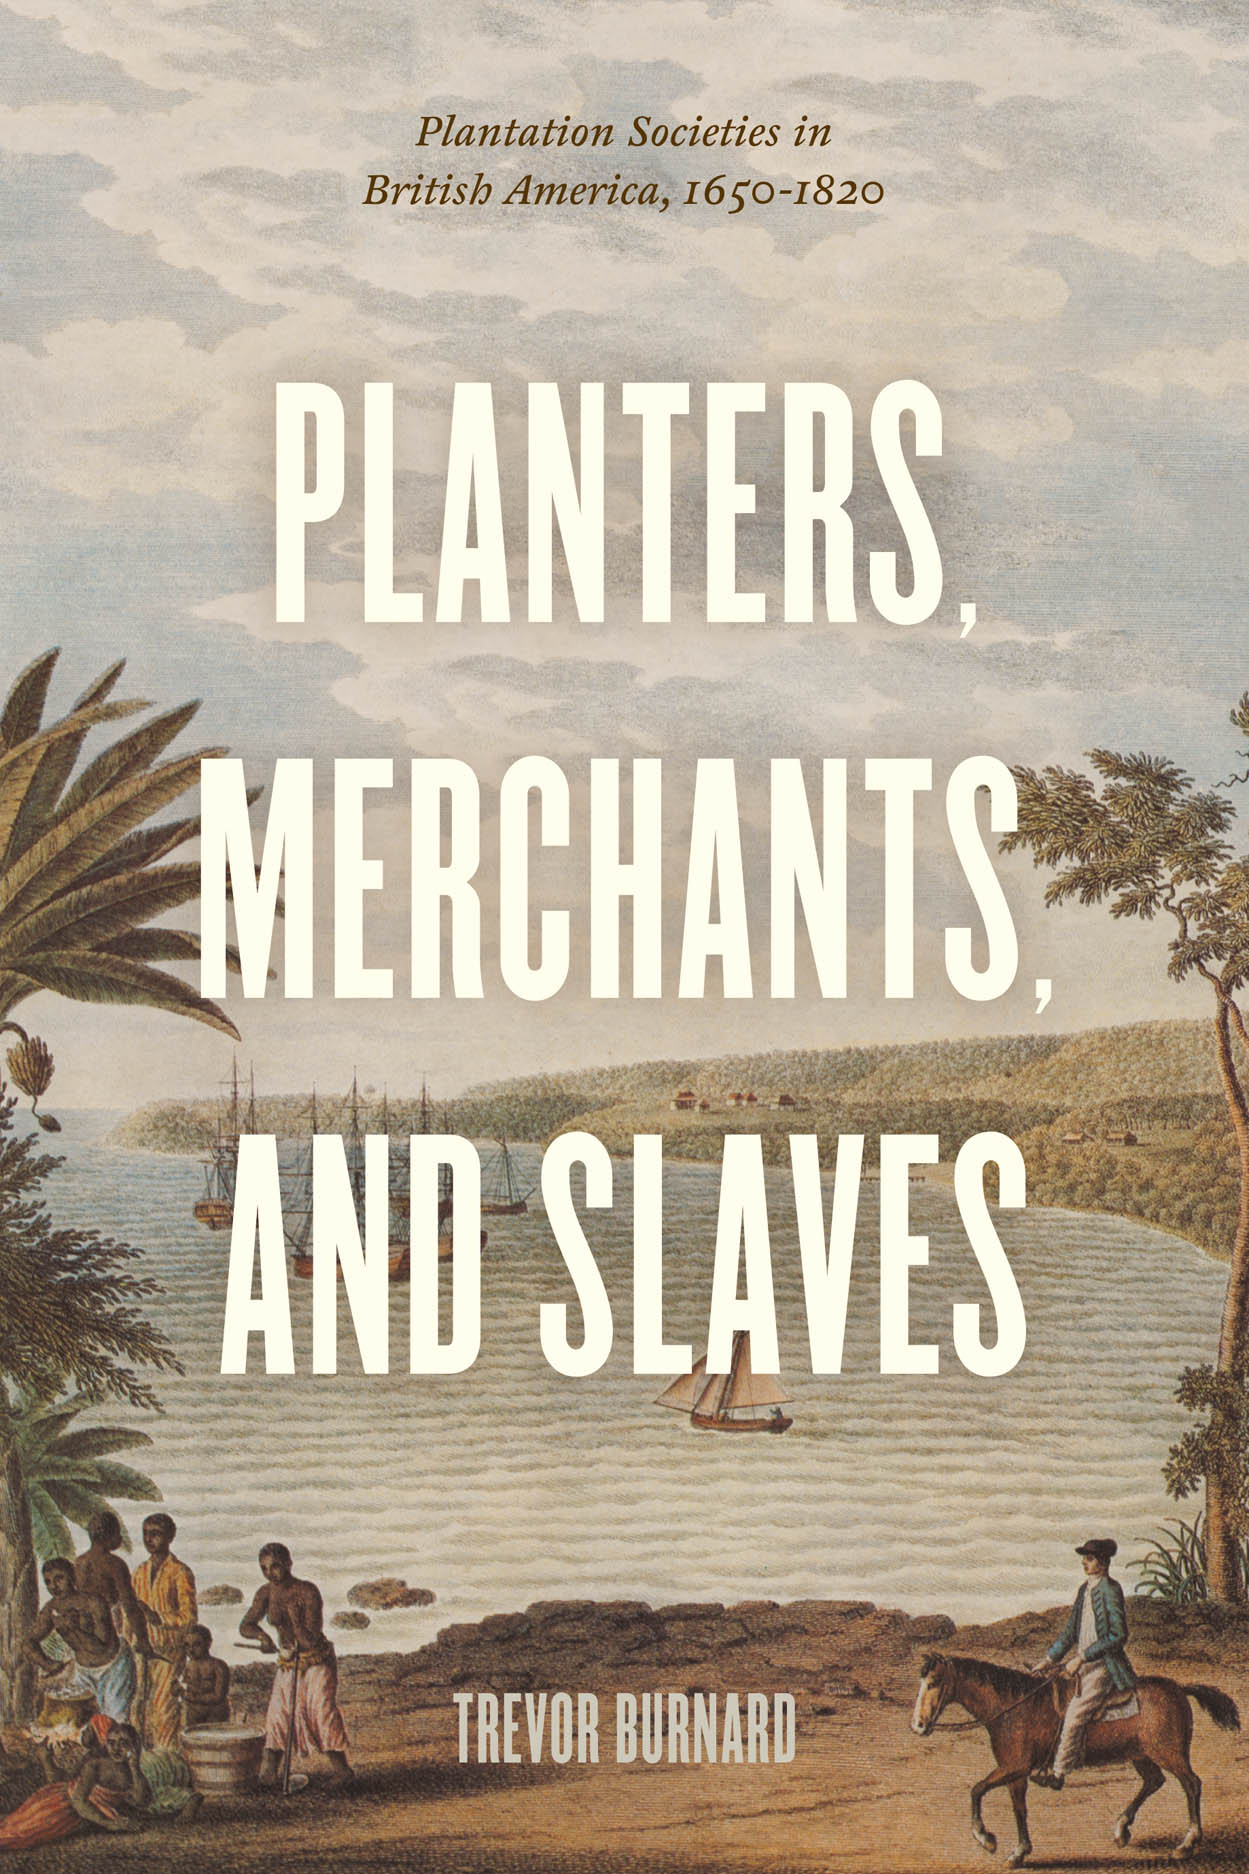 Planters, Merchants, and Slaves: Plantation Societies in British America, 1650-1820